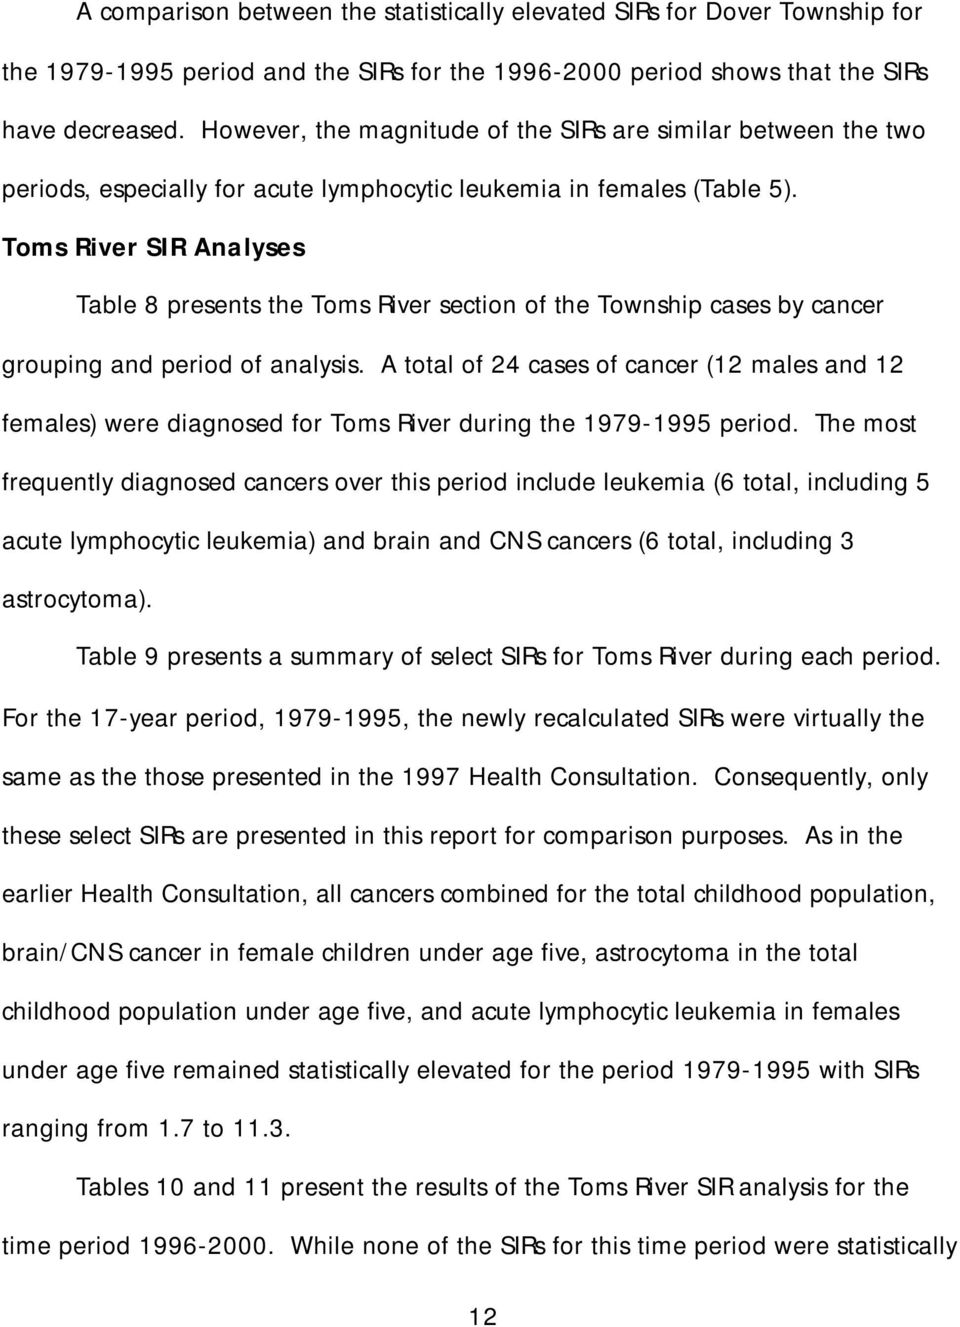 Toms River SIR Analyses Table 8 presents the Toms River section of the Township cases by cancer grouping and period of analysis.